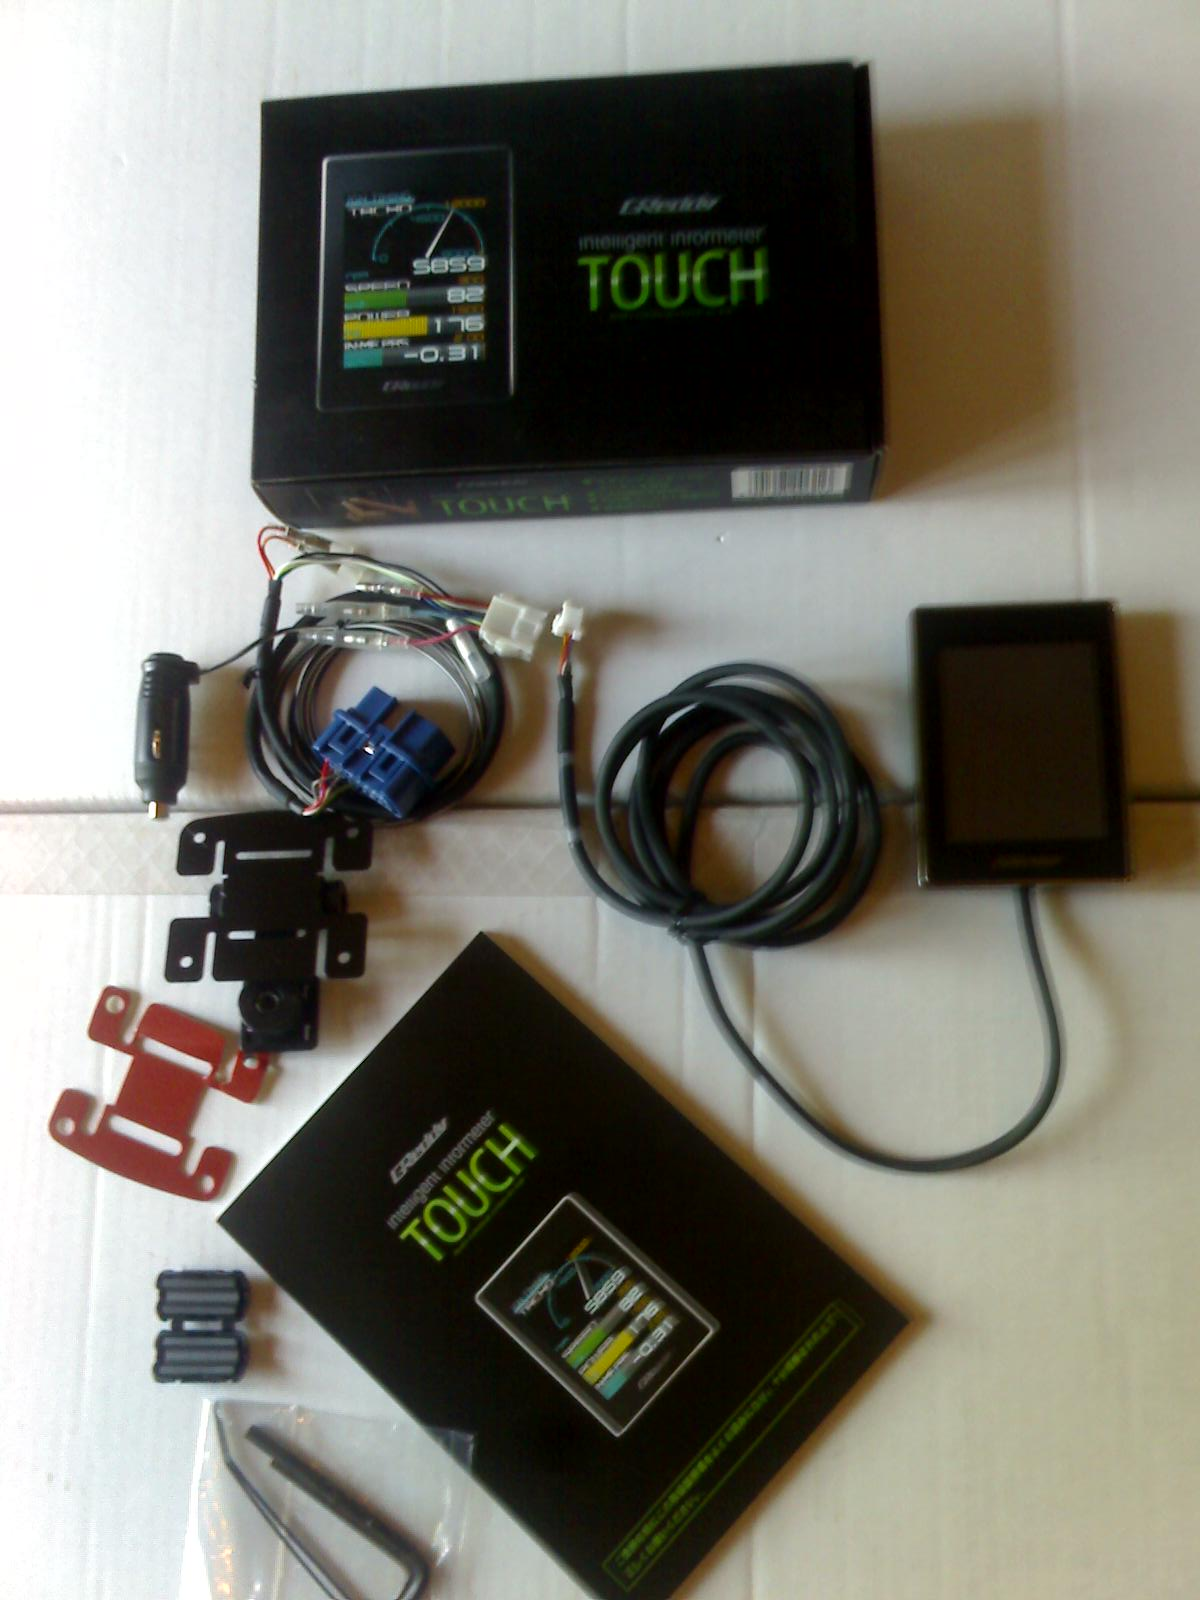 Intelligent Informeter touch